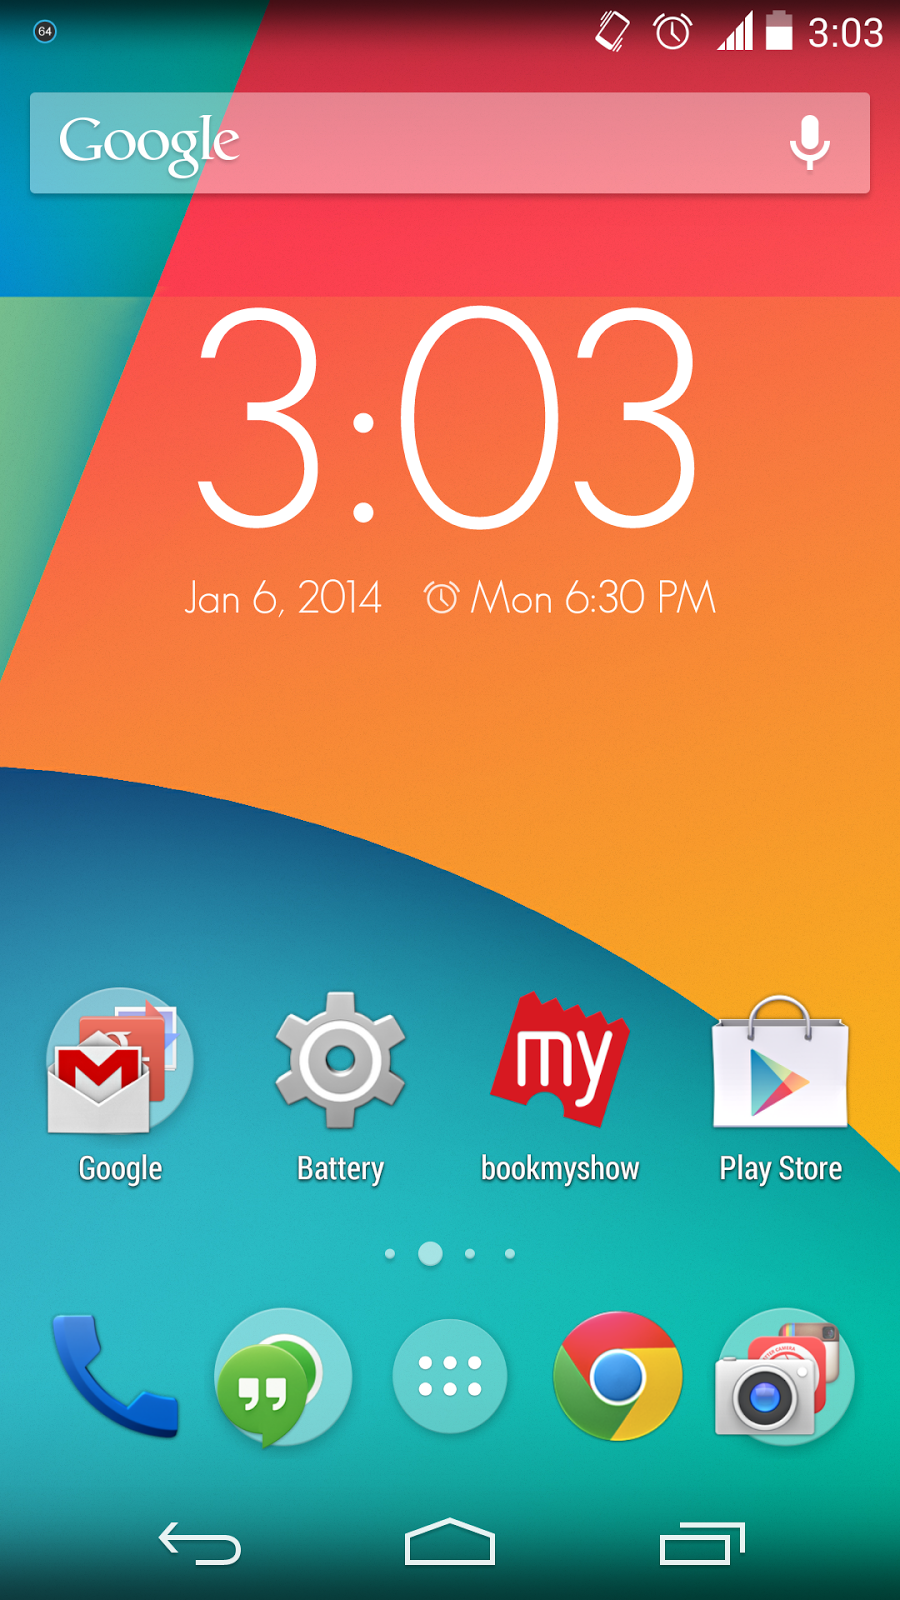 Google+LG+Nexus+5+Android+KitKat+Review+Handson+Detailed+Benchmark++%25285%2529.png